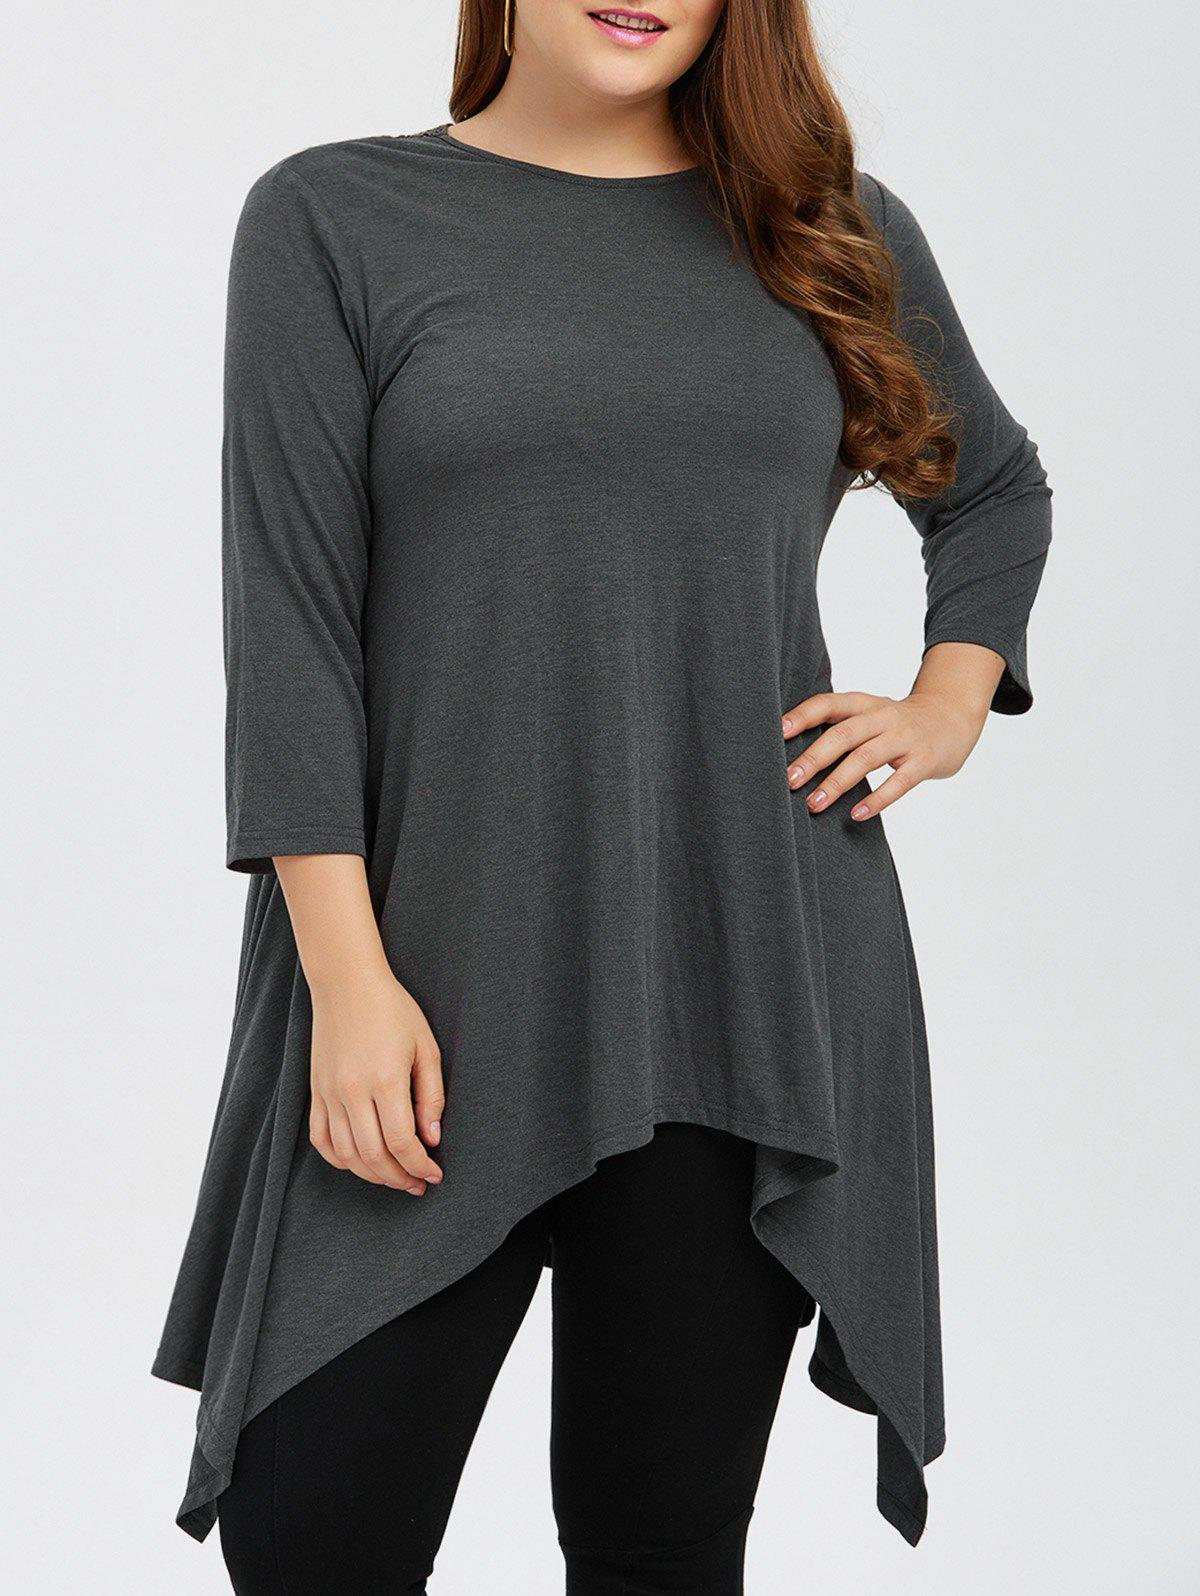 Plus Size Lace Insert Asymmetric Longline T-Shirt - GRAY XL